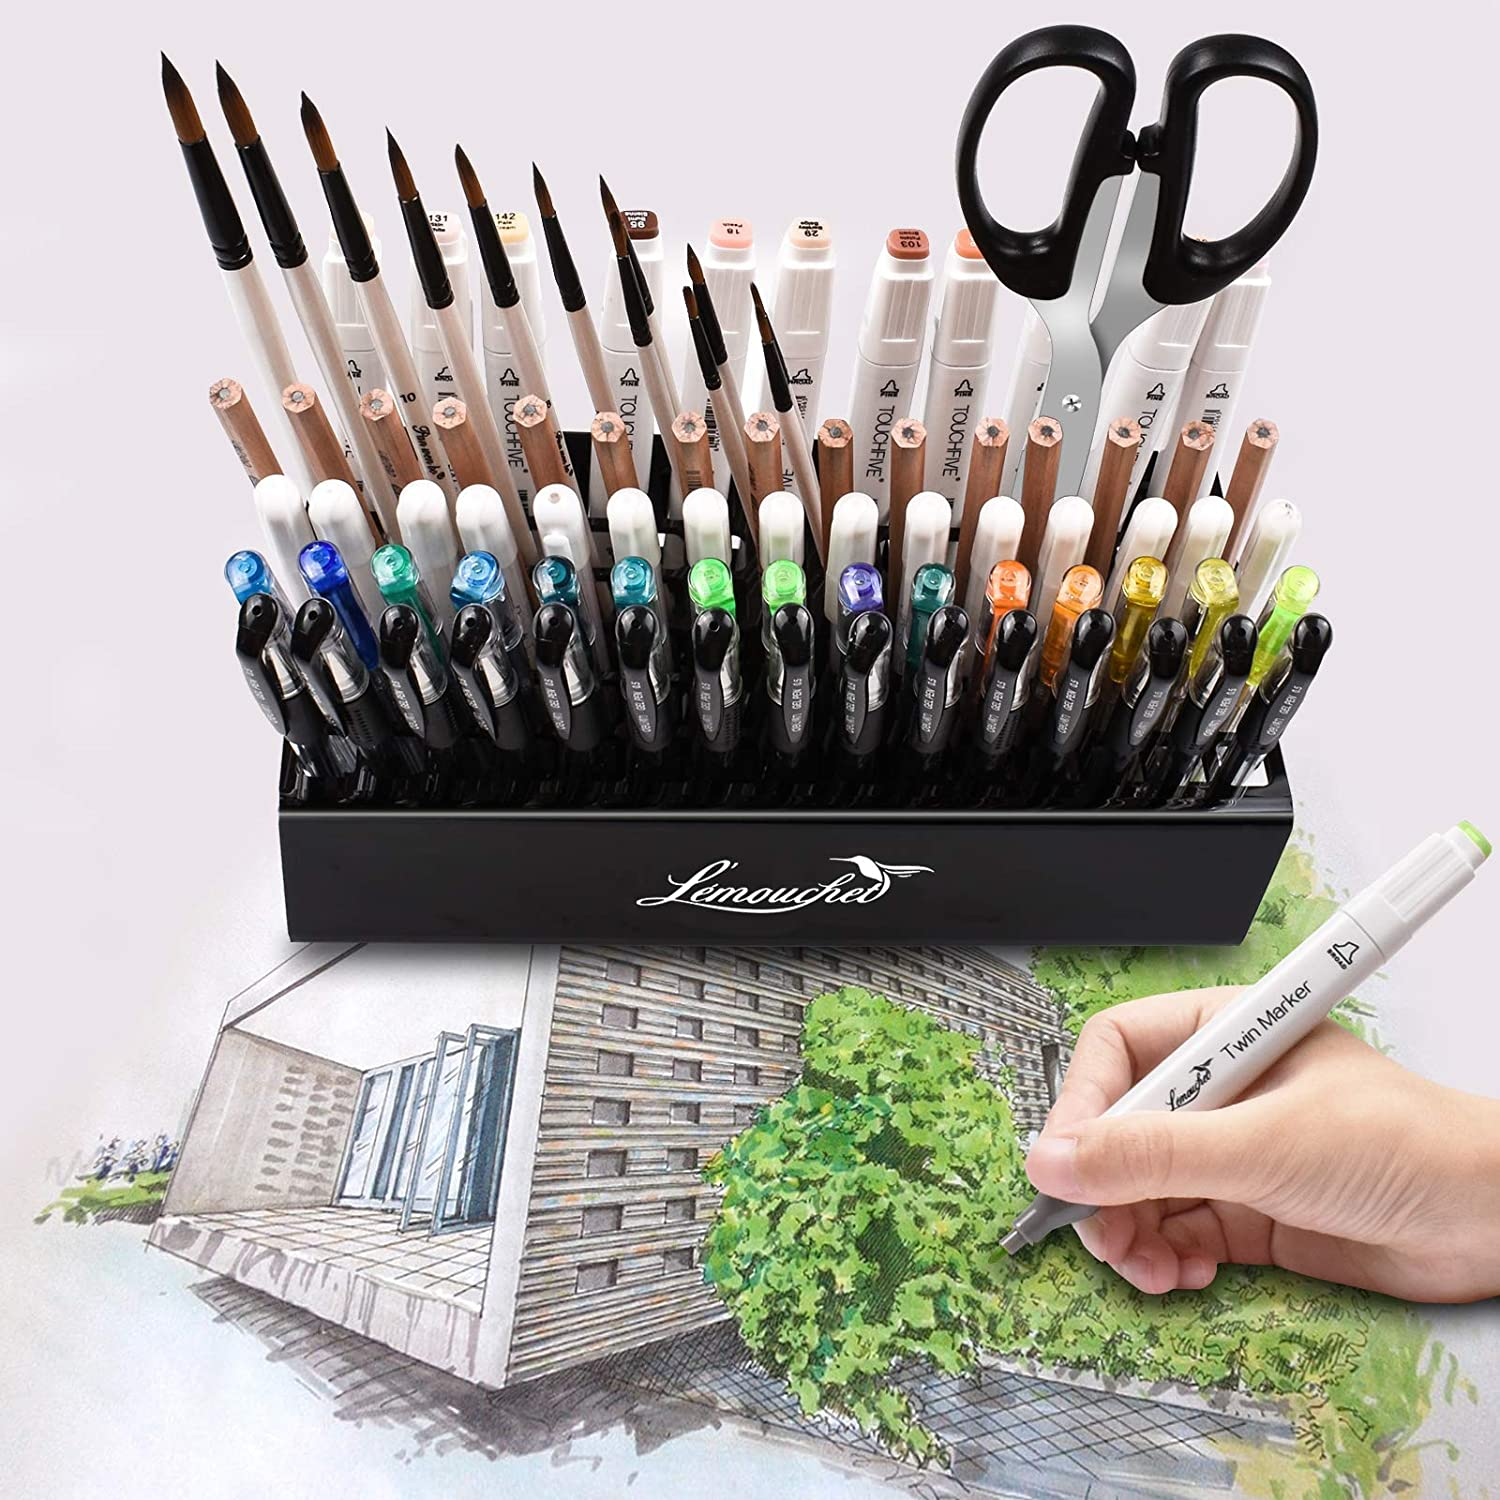 L/émouchet 24 Colours Art Markers Twin Marker Pens Skin Tones Markers with Carrying Case for Adult Coloring Drawing Sketching Highlighting /& Underlining